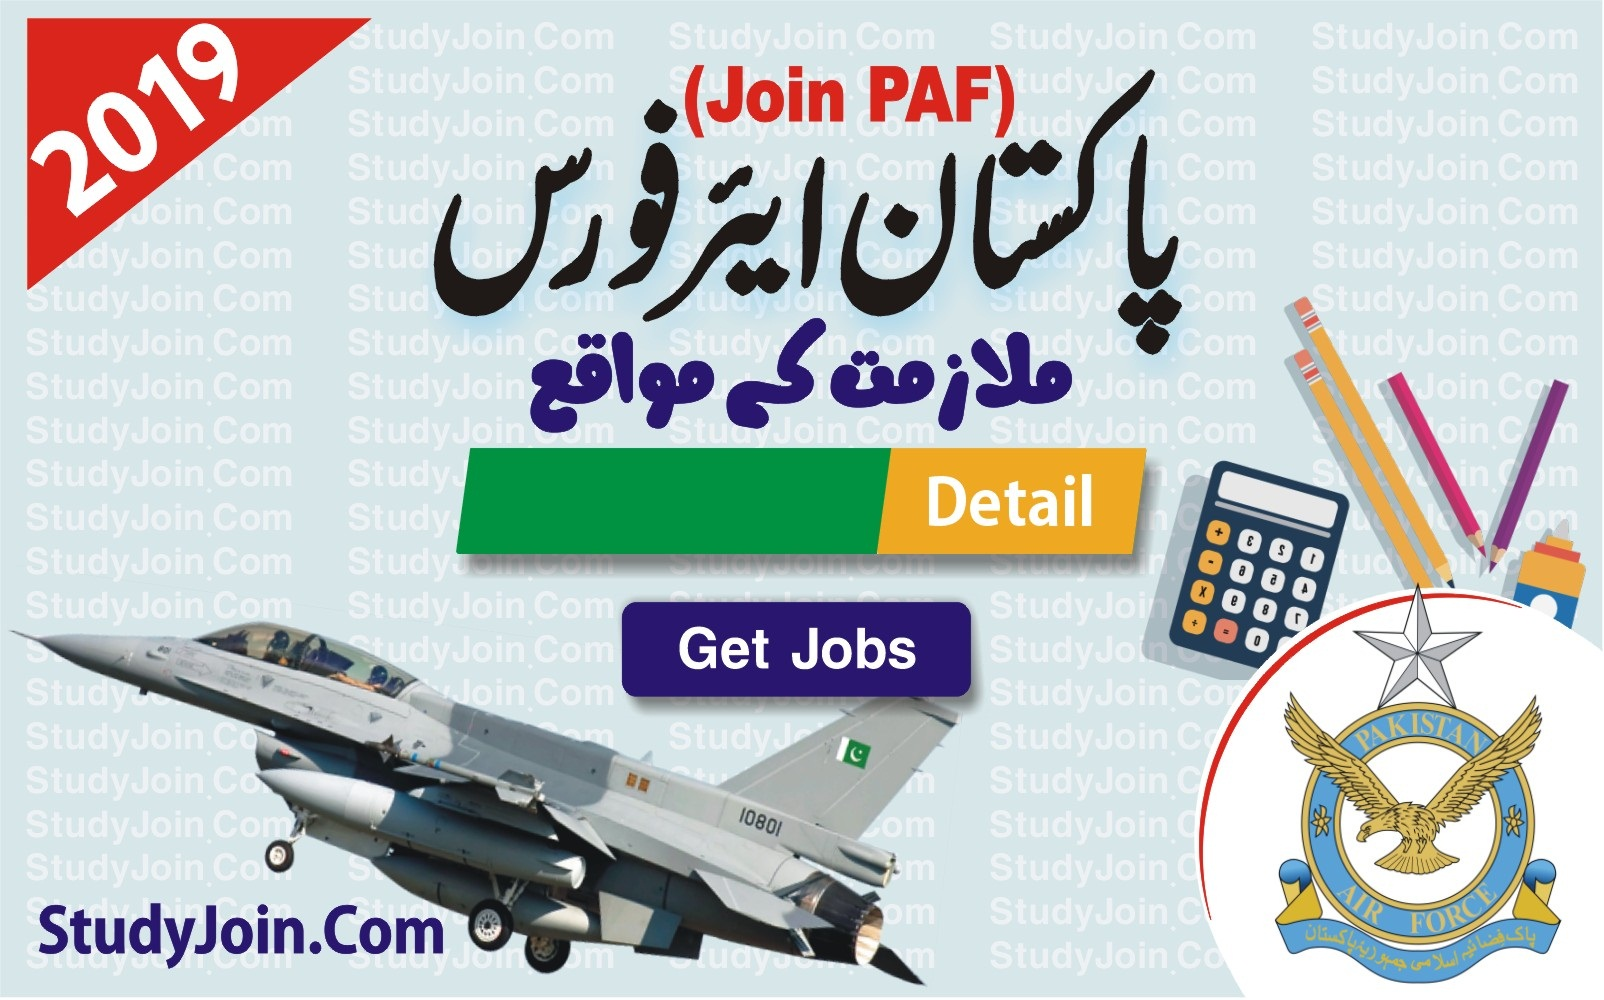 pakistan air force jobs 2019,join paf registration slip, join paf registration slip 2019,join paf registration slip download, www.joinpaf.gov.pk 2019 online registration,join paf civilian jobs 2019,pakistan air force jobs 2019,join paf as airman,paf jobs 2019 Pilots,paf jobs 2019 advertisement,join pakistan air force,join paf registration slip,pakistan air force jobs 2019,join paf as airman,pakistan air force paf,join paf as clerk,join paf civilian jobs 2019